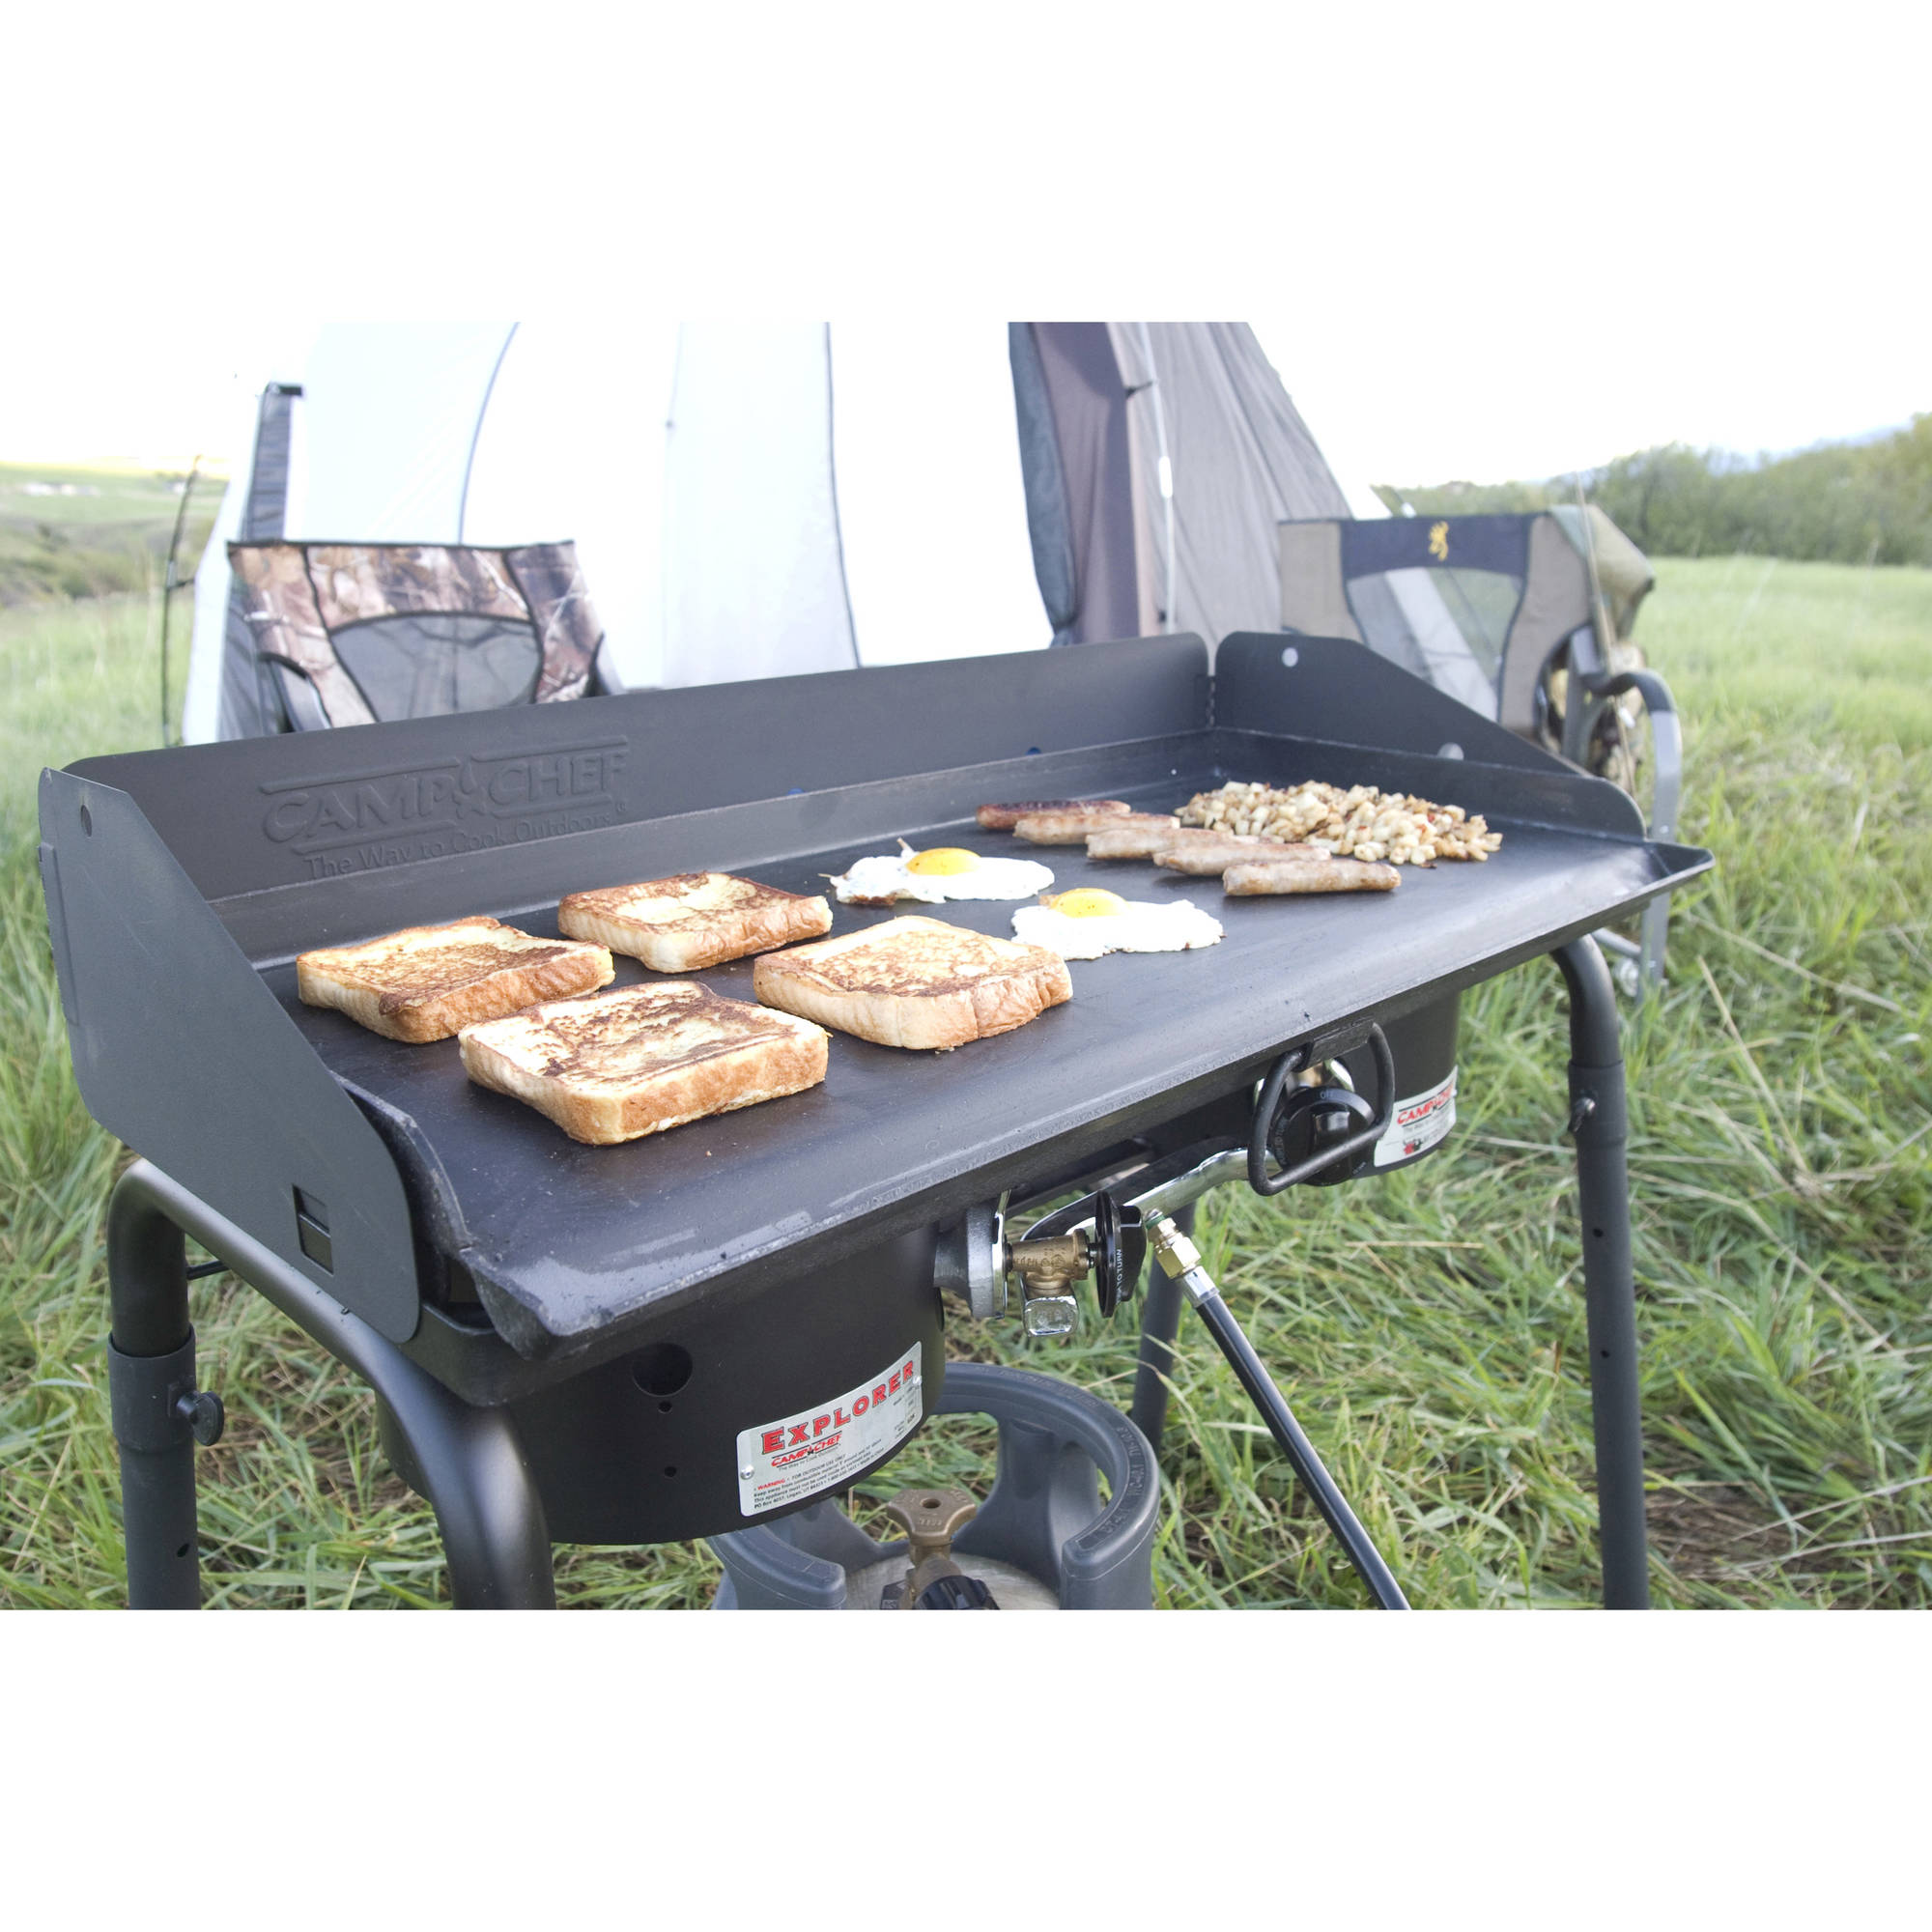 Camp Chef Deluxe Griddle Covers 2 Burners On 2 Burner Stove   Walmart.com